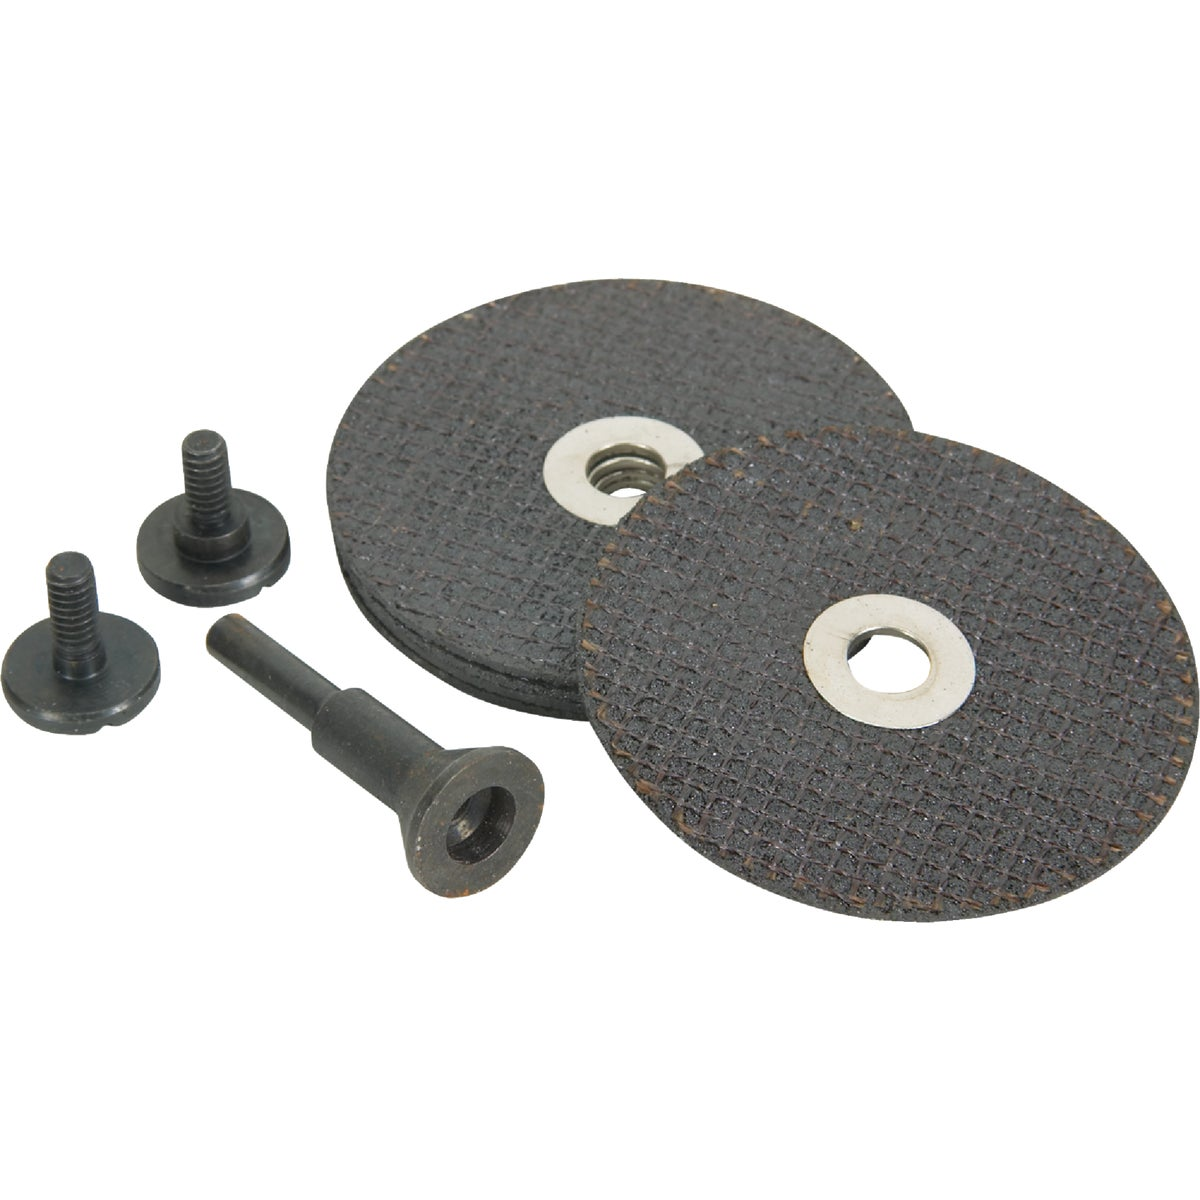 ABRASIVE WHEEL KIT - 36543 by Weiler Corporation